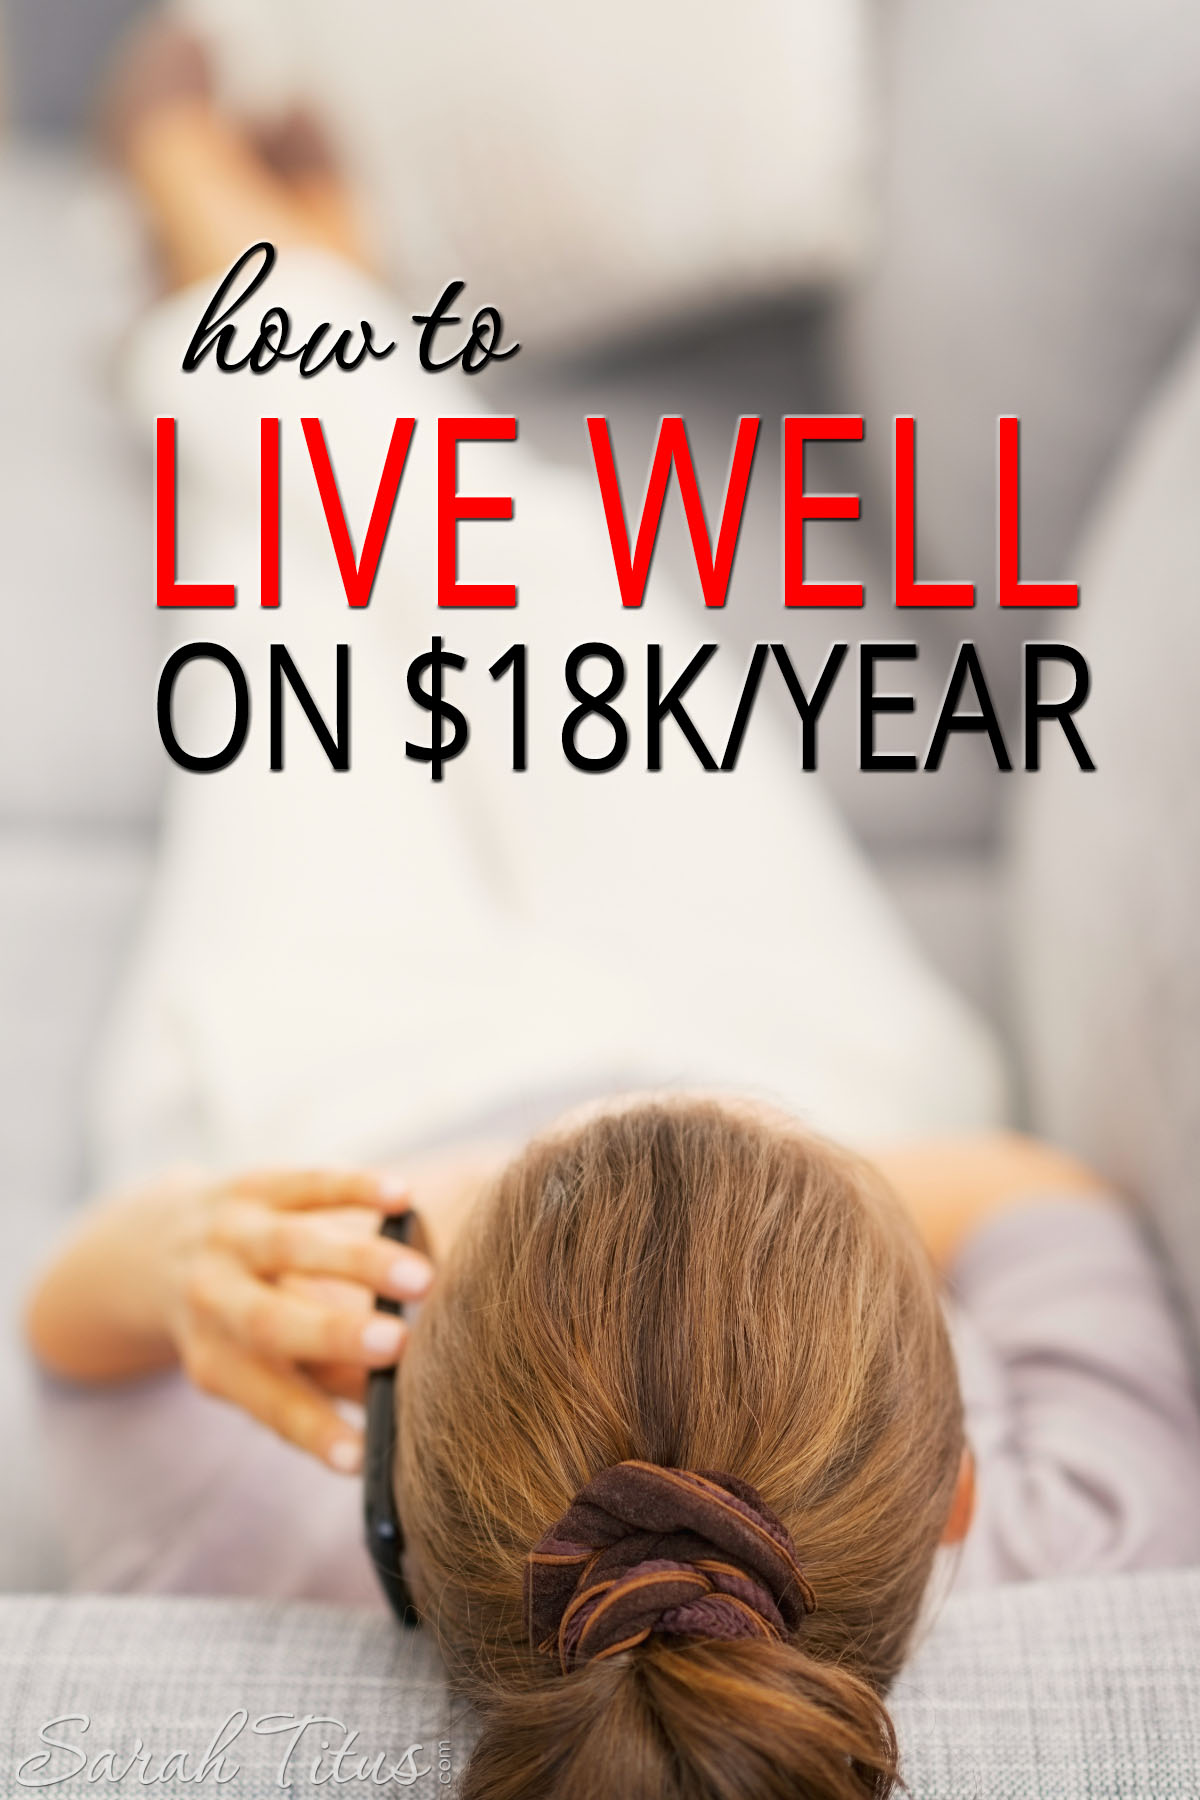 How to Live Well on $18k/year